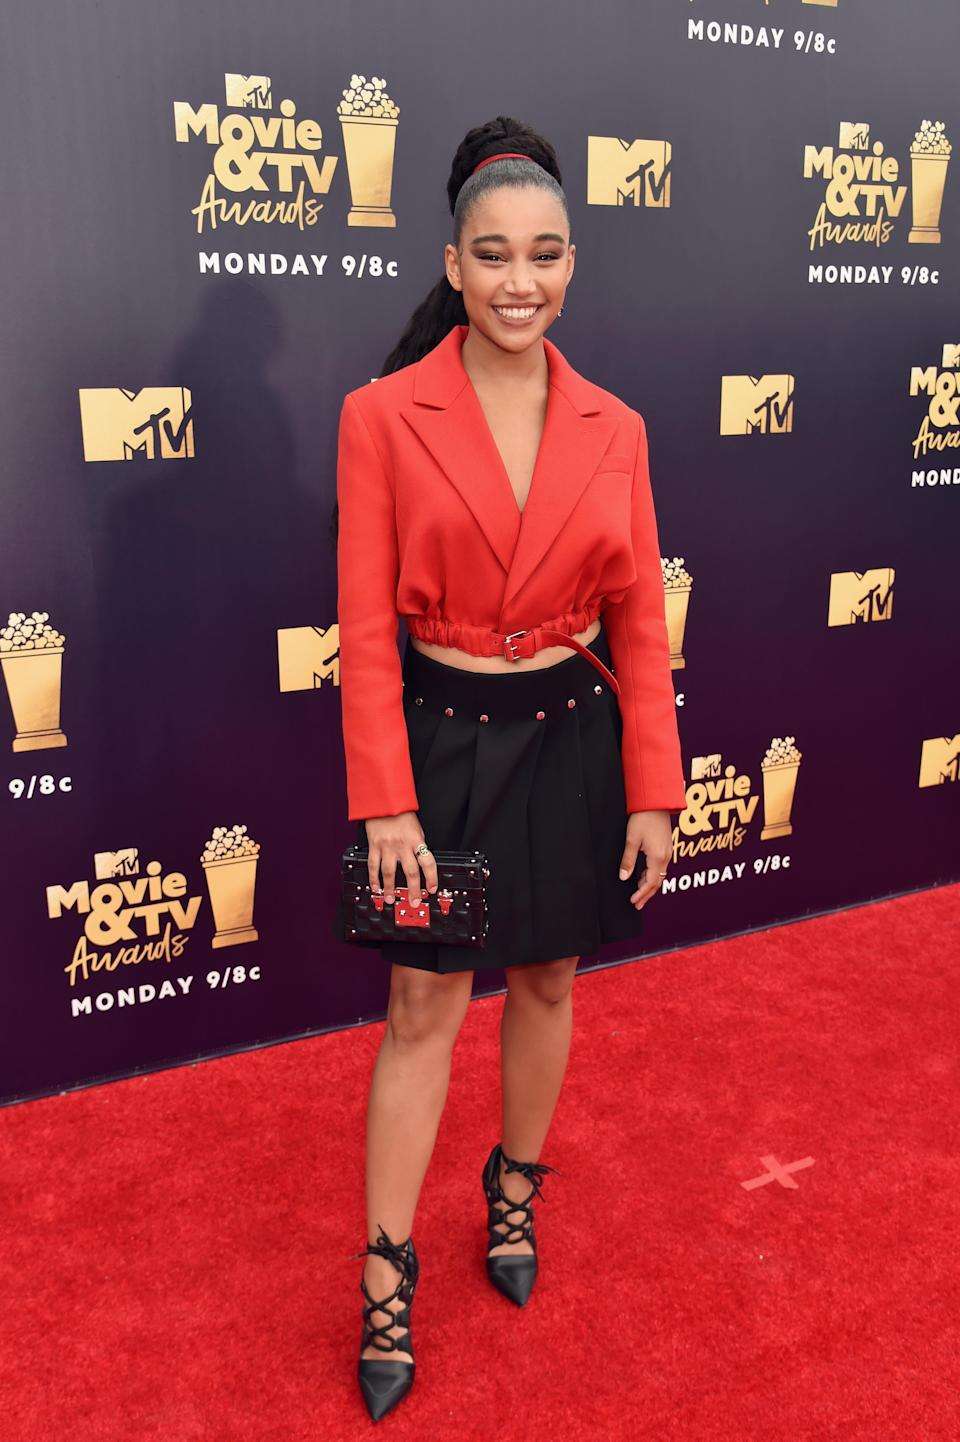 Amandla Stenberg attends the 2018 MTV Movie and TV Awards on June 16 in Santa Monica, Calif. (Photo: Getty Images)